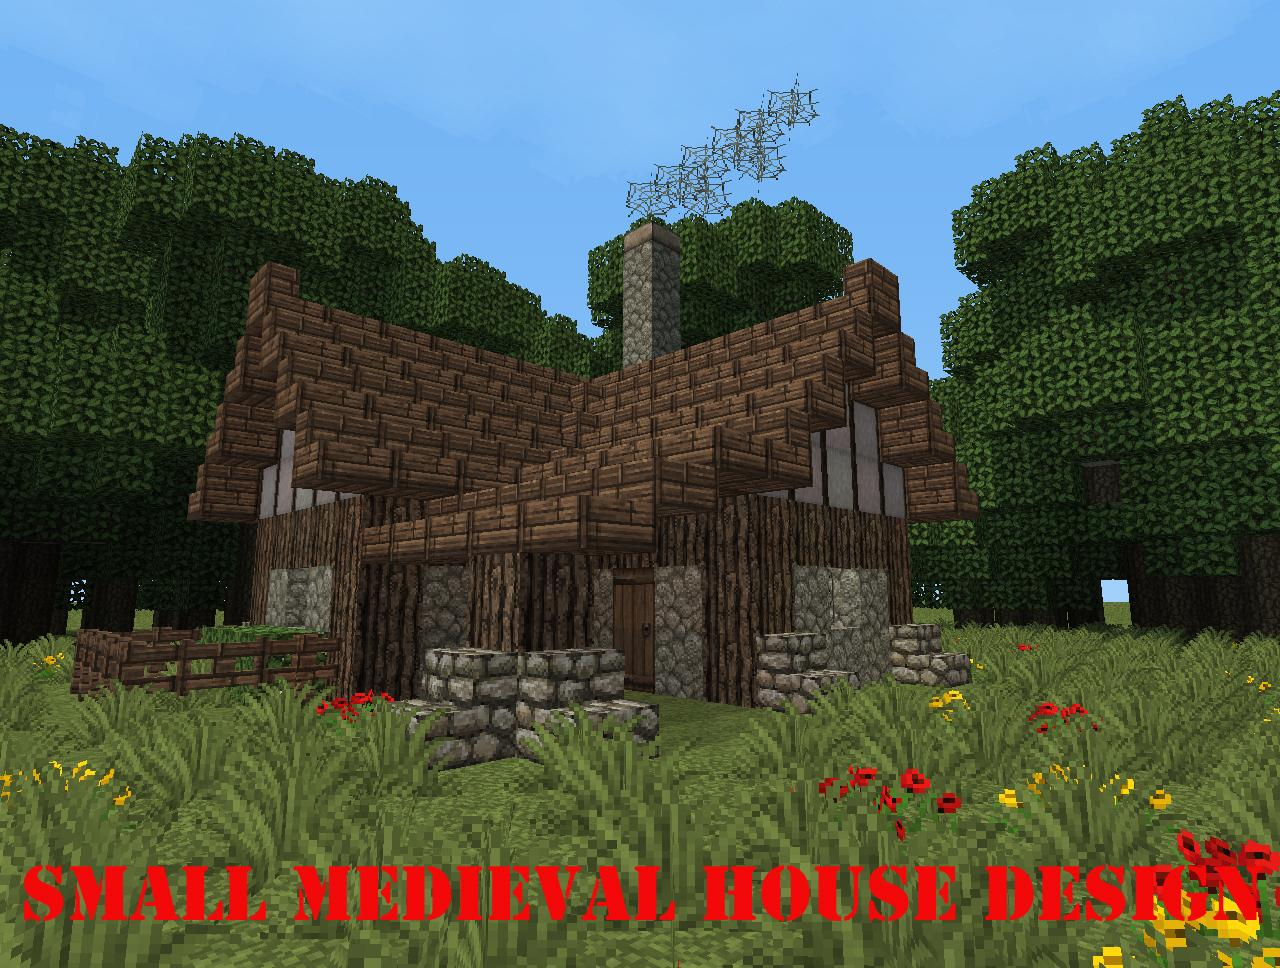 Small medieval house design minecraft project for Medieval house design